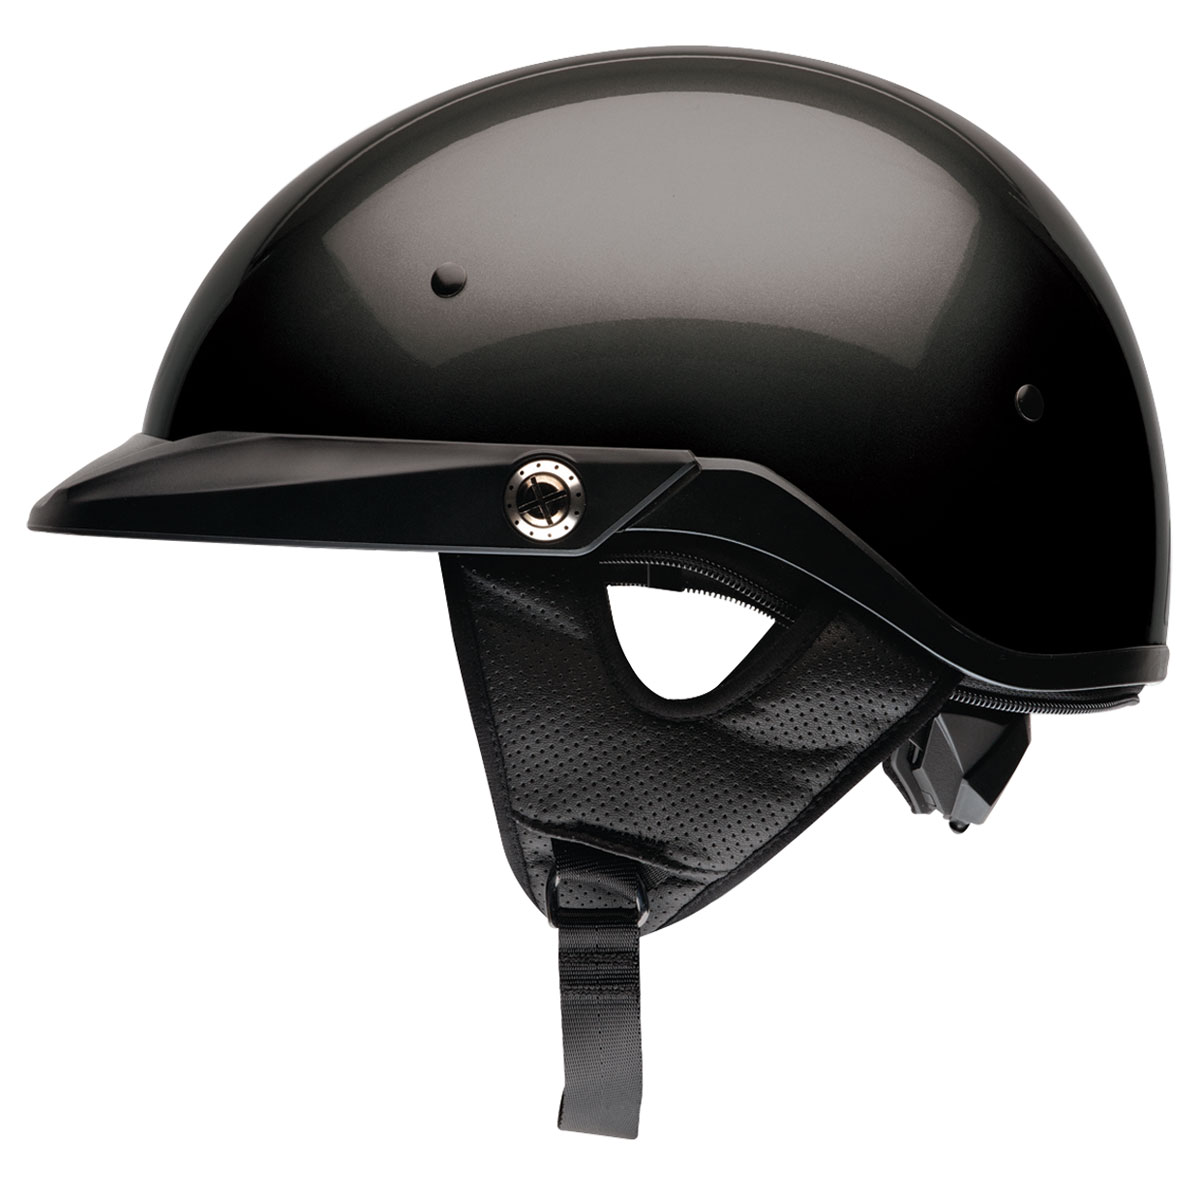 bell pit boss black half helmet | 542-091 | j&p cycles